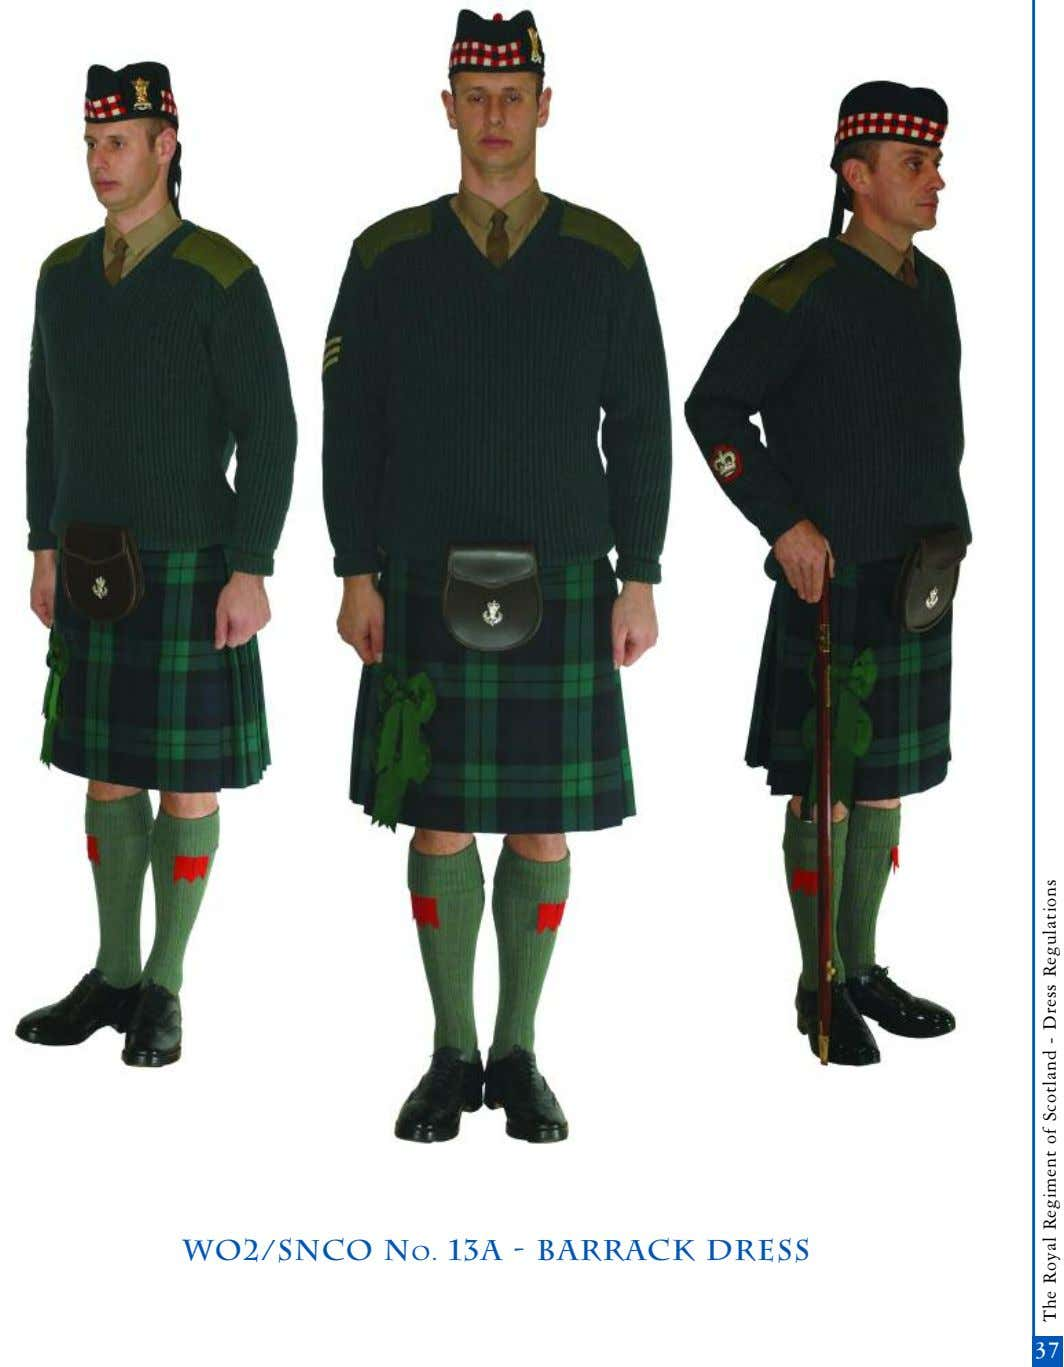 wo2/snco No. 13a - barrack dress 37 The Royal Regiment of Scotland - Dress Regulations